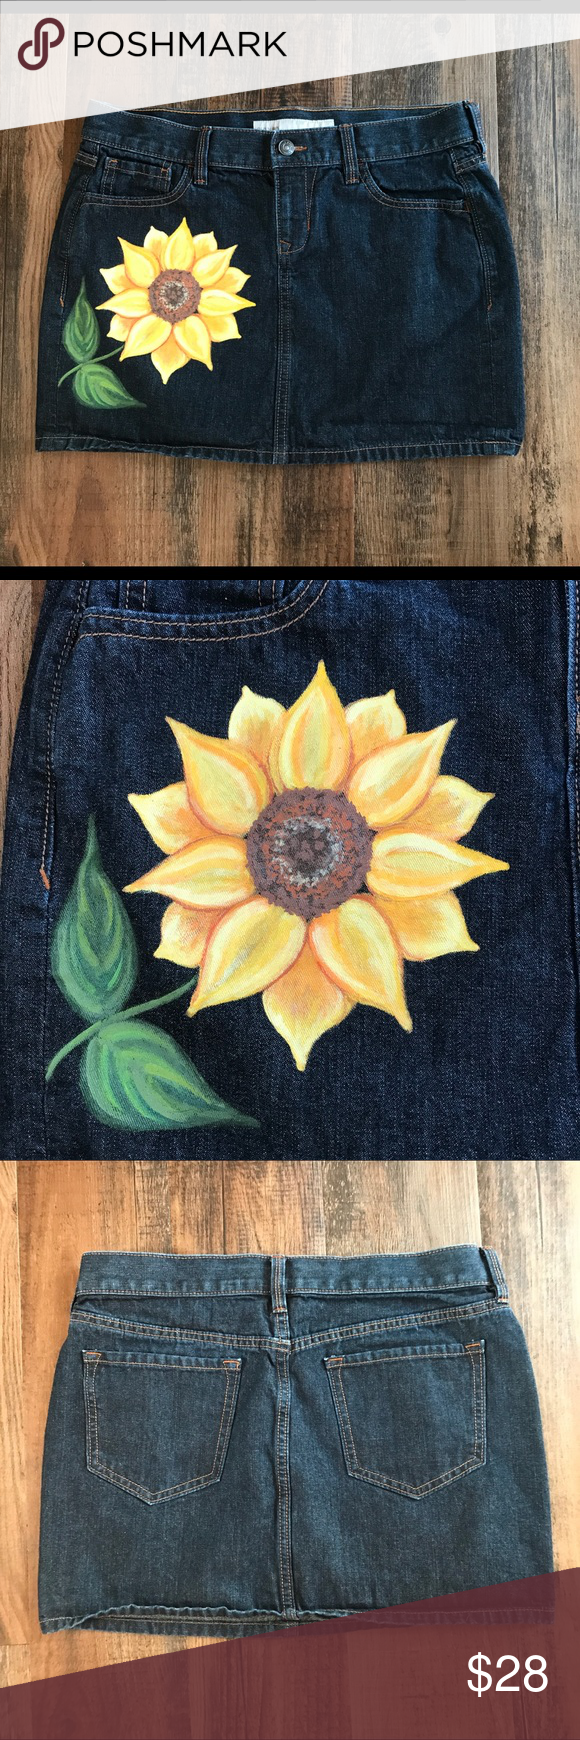 Old Navy Denim Skirt With Hand Painted Sunflower Upcycled